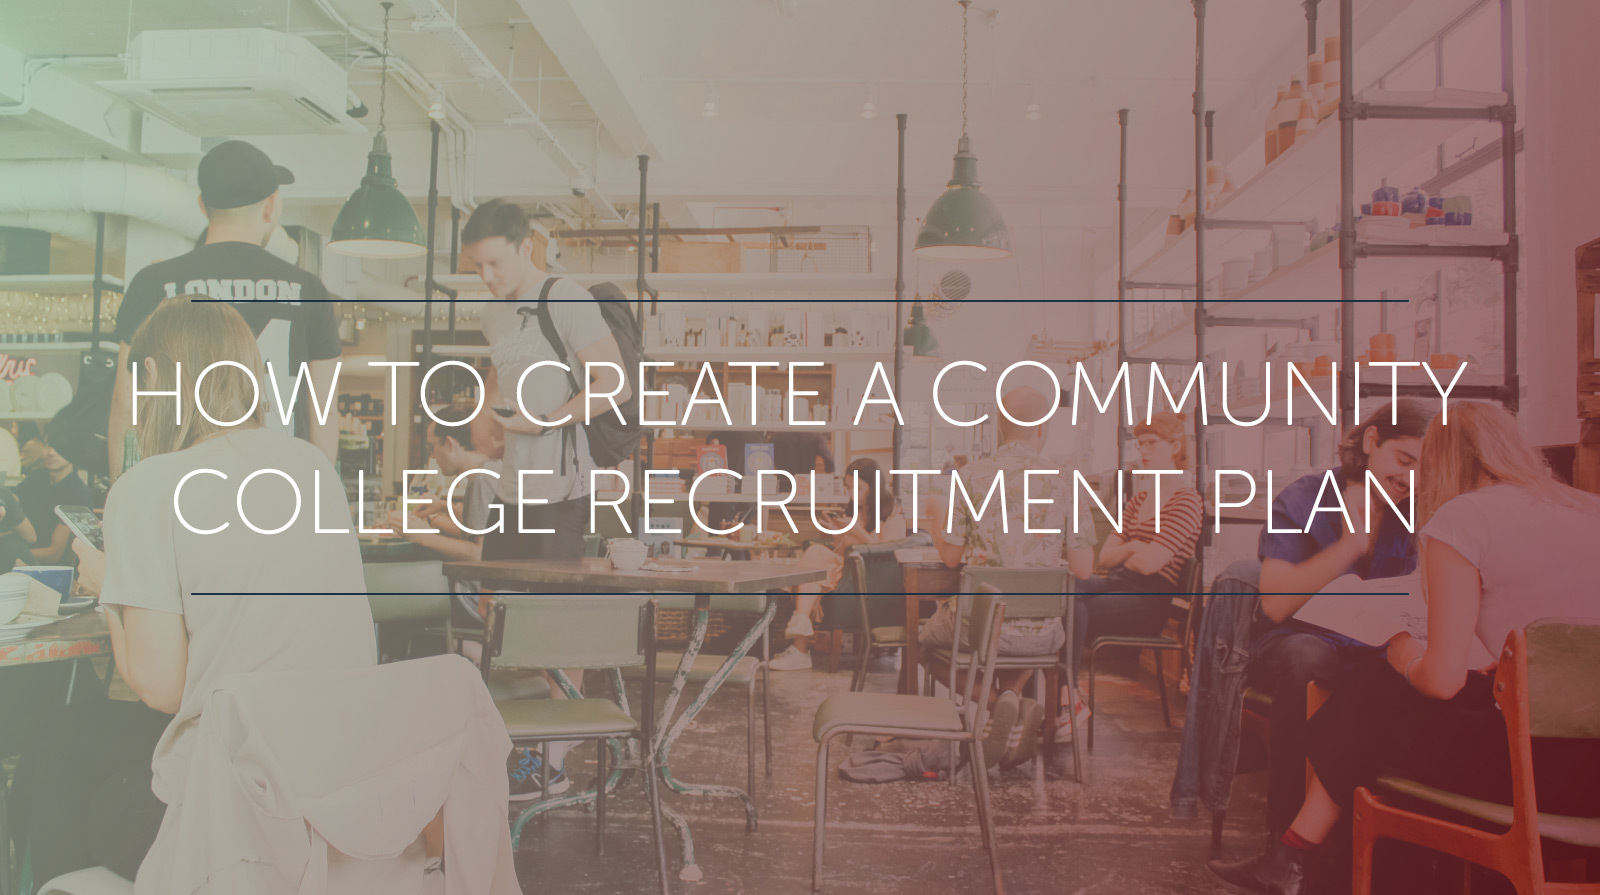 How to create a community college recruitment plan